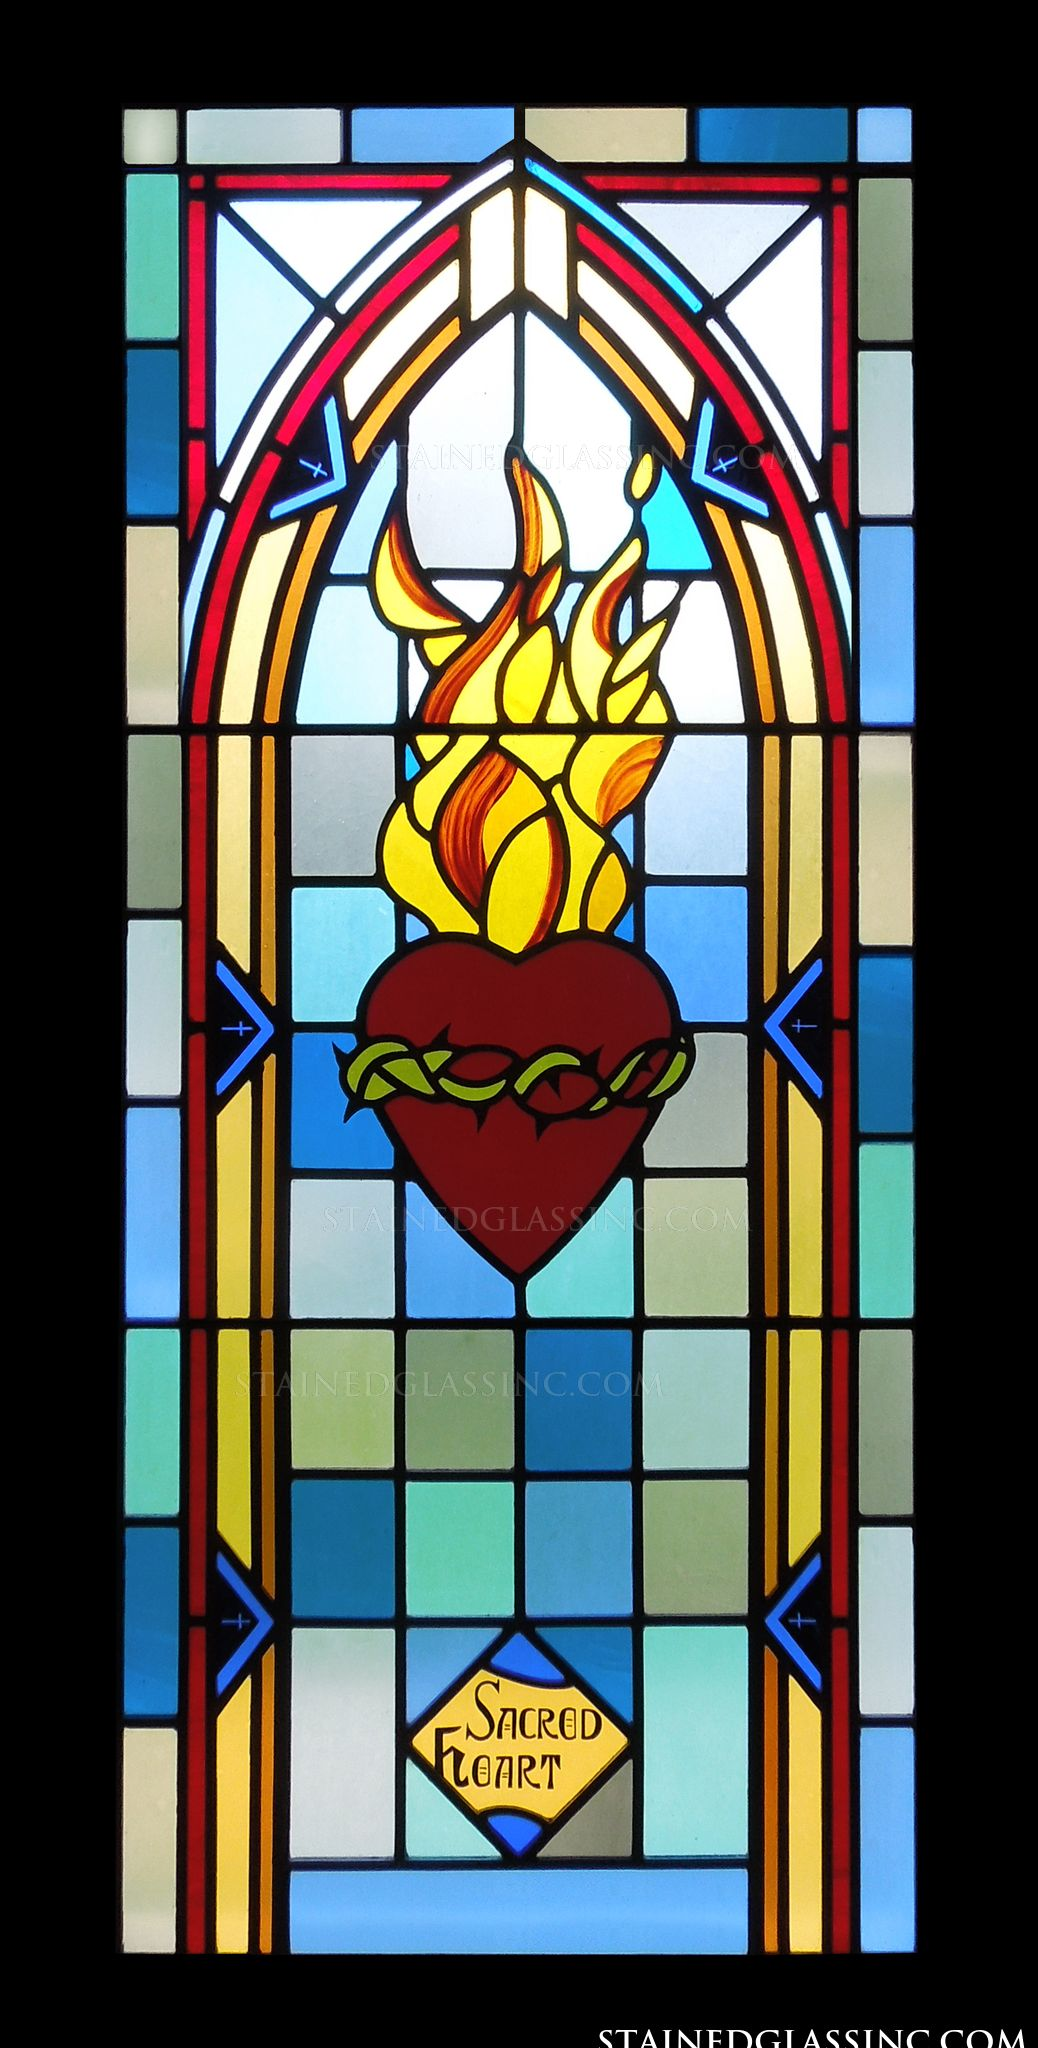 u0026quot the sacred heart symbol u0026quot  religious stained glass window